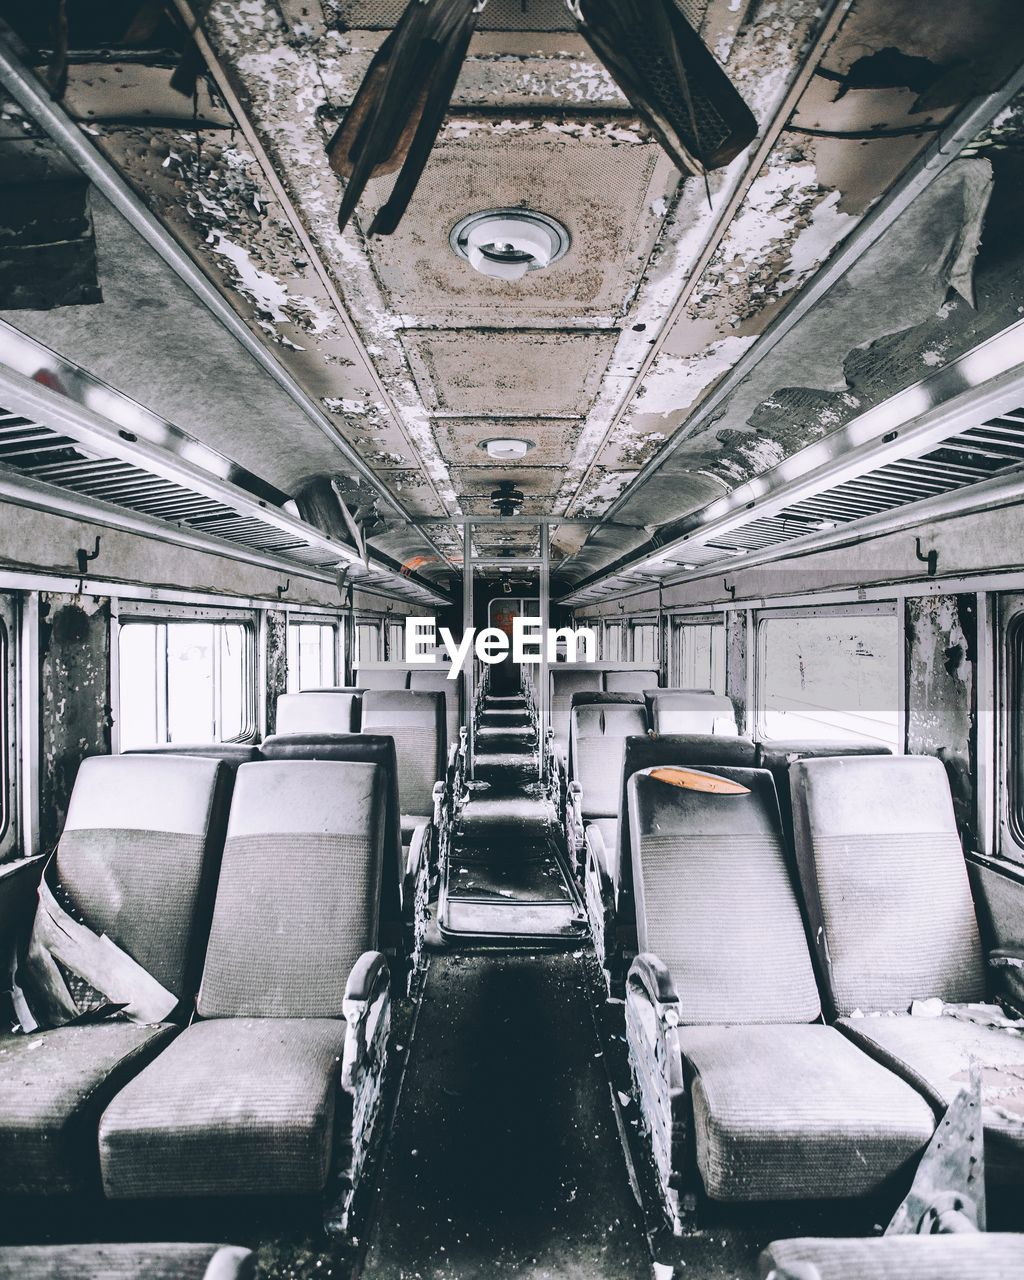 Interior of abandoned bus